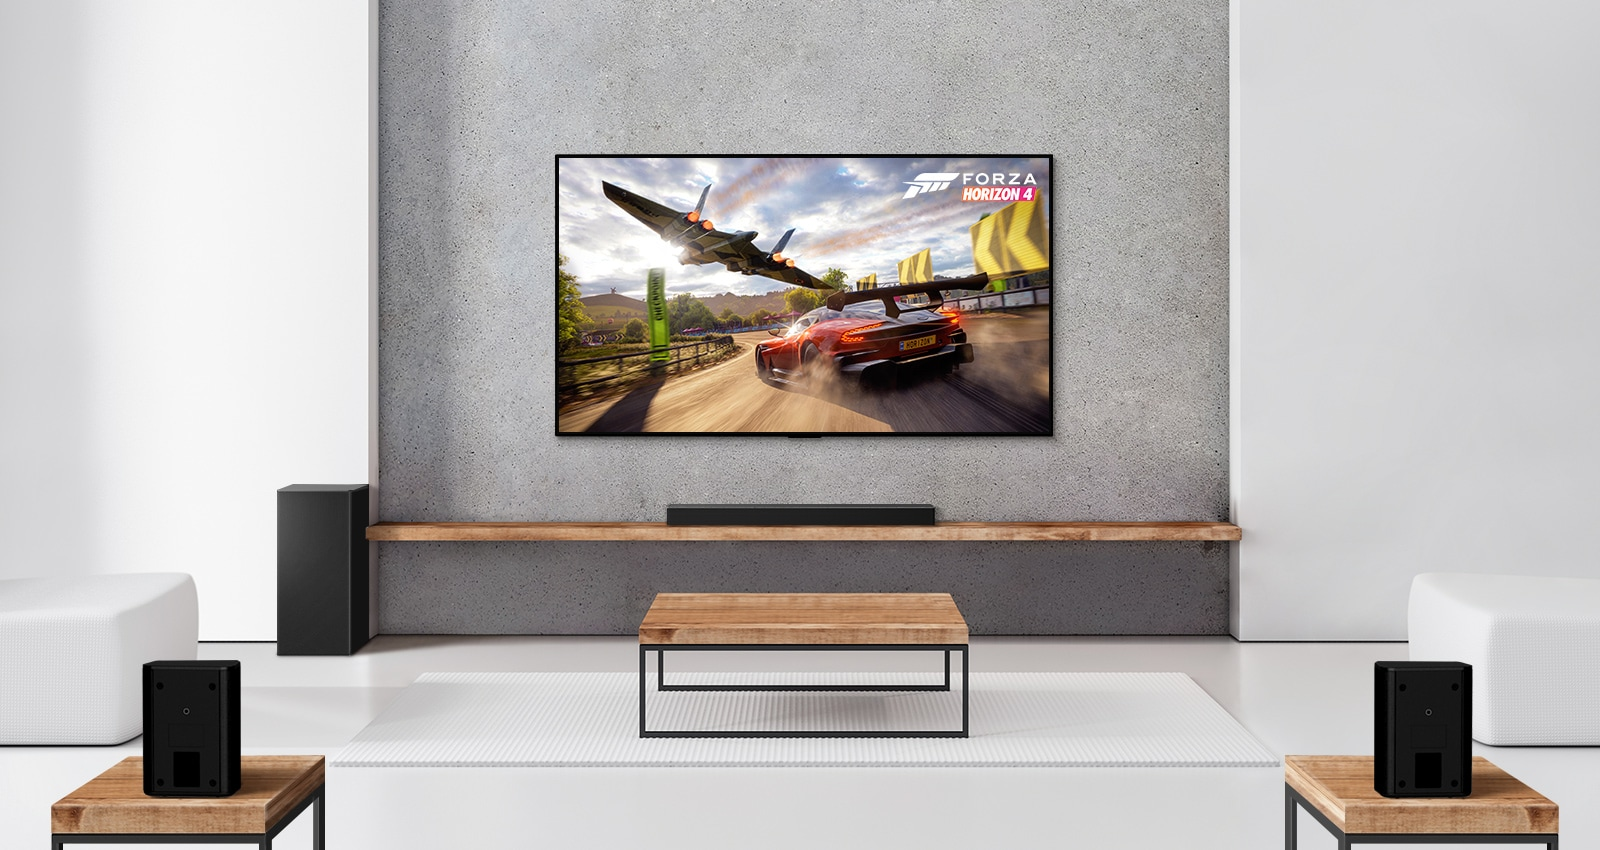 A set of 2 rear speakers, subwoofer, and a soundbar, and TV are in a white living room. A driving car and a spaceship are on TV screen.